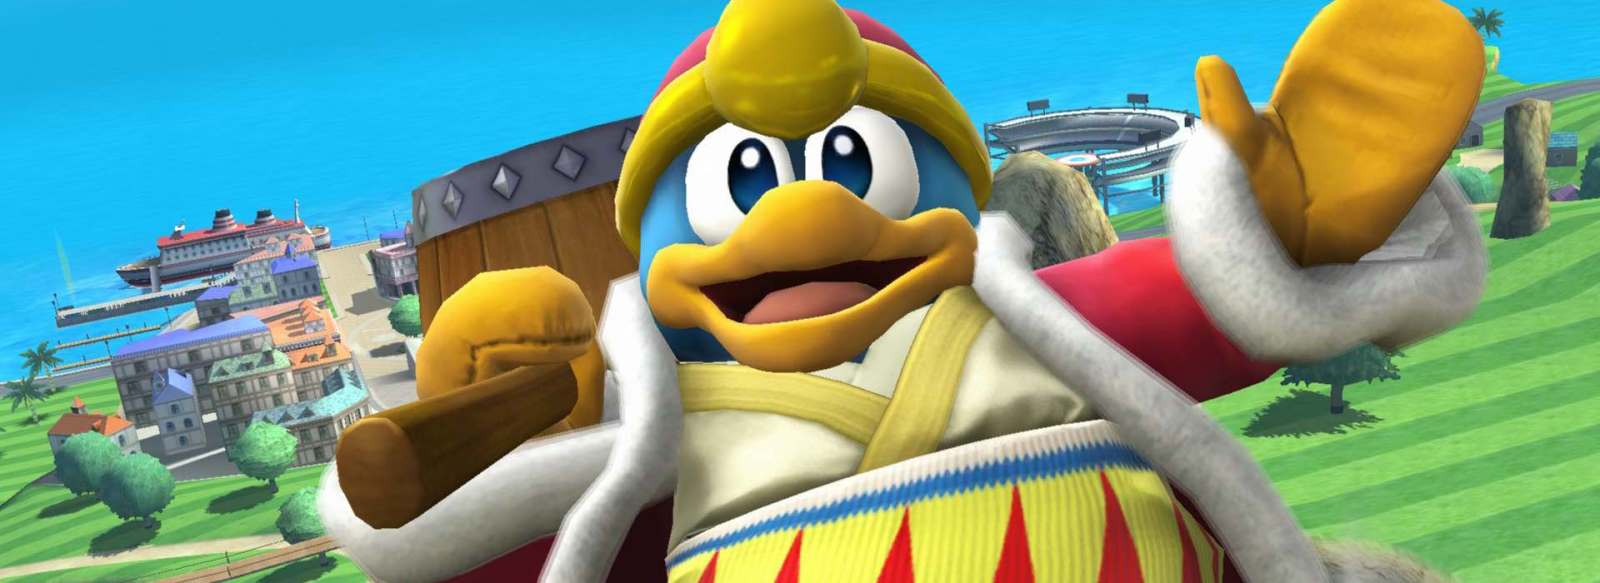 king-dedede-super-smash-bros-for-wii-u